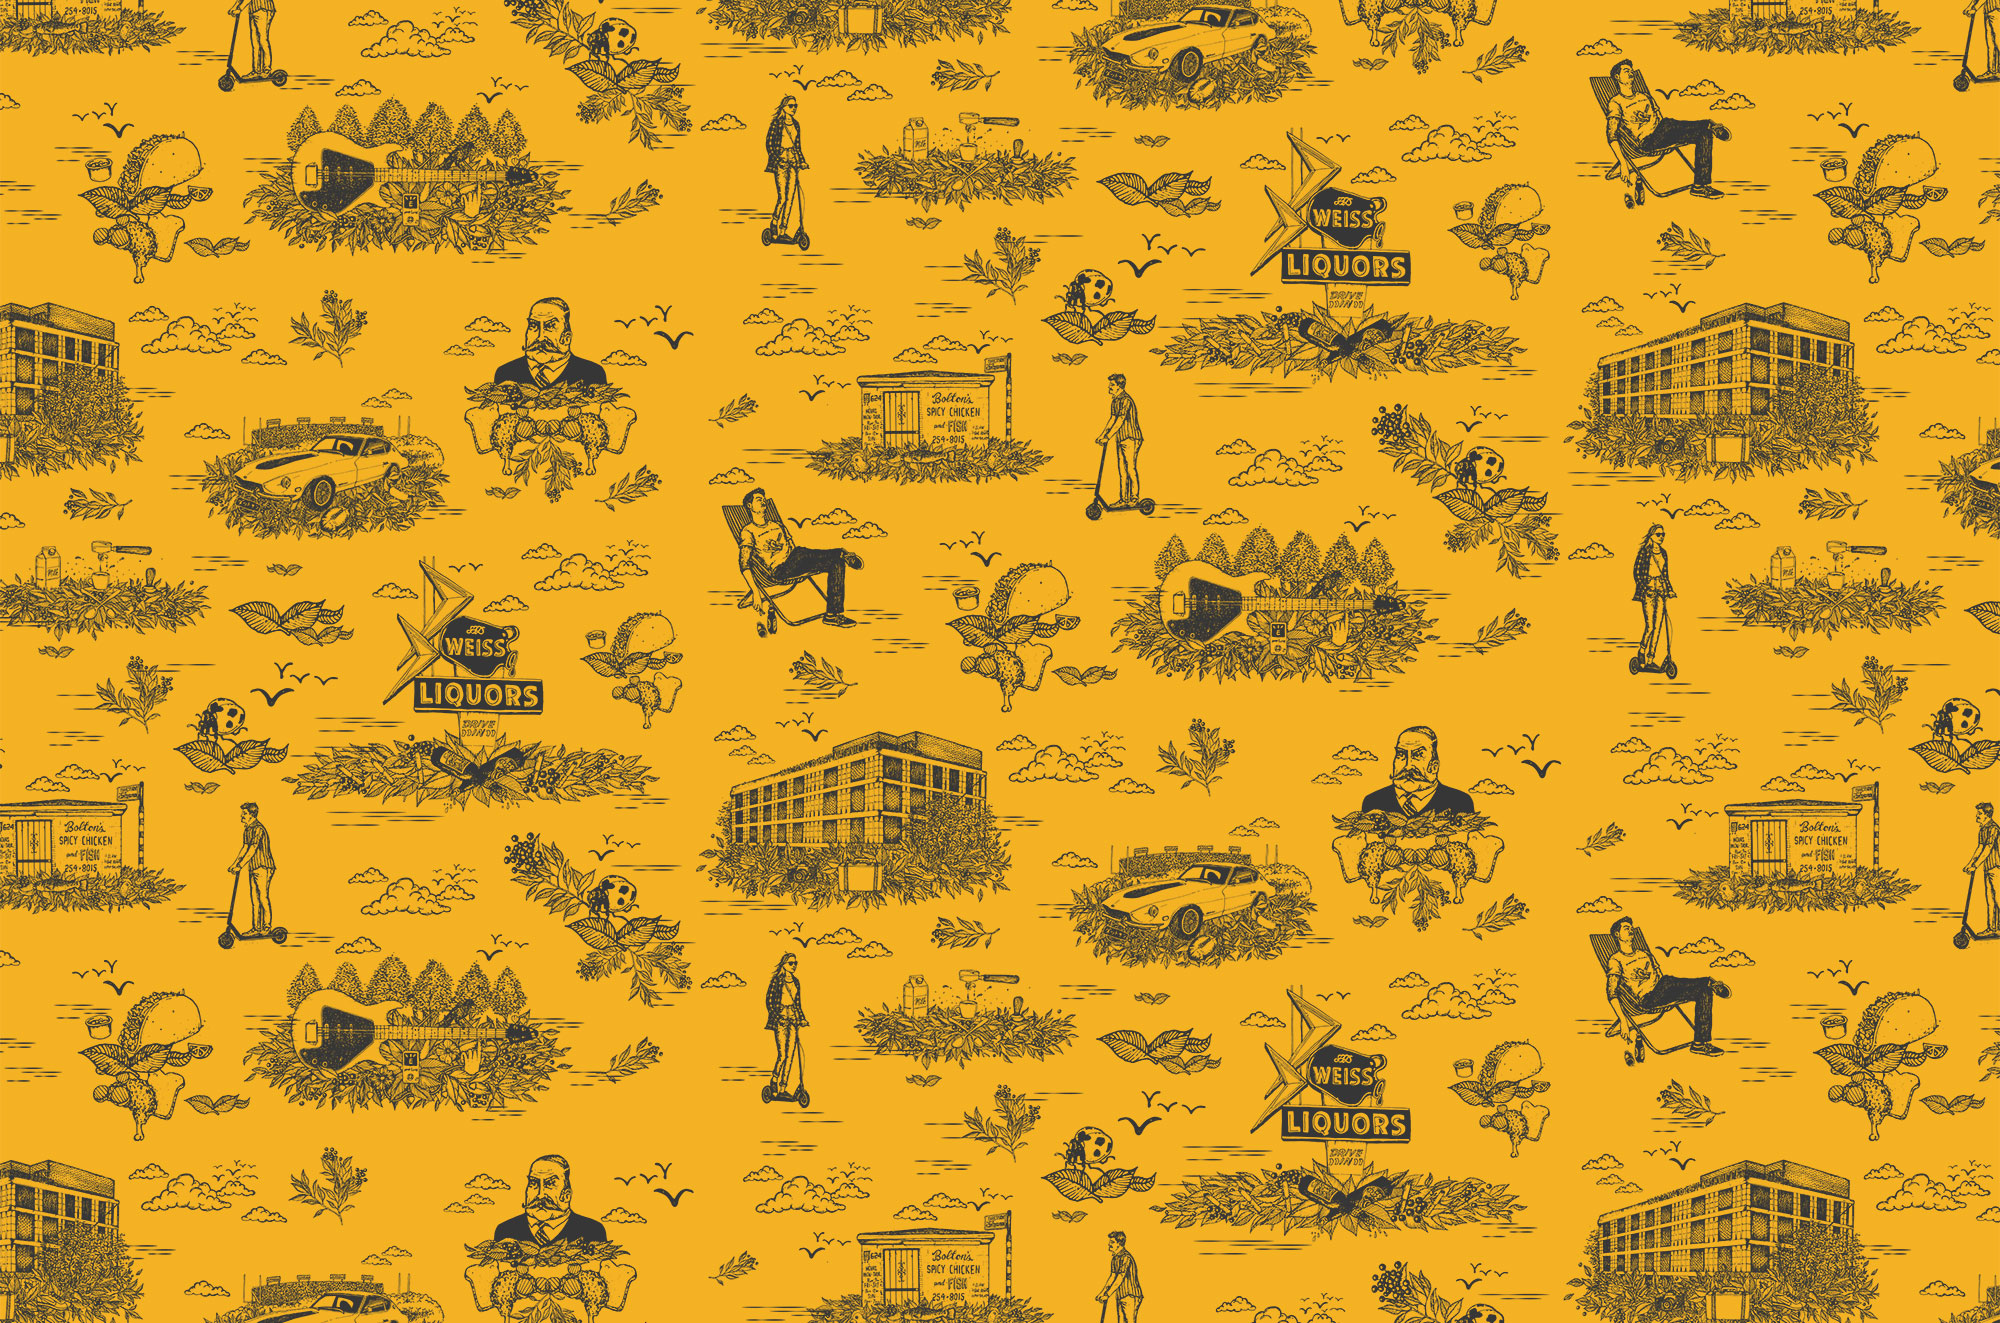 fhj-toile-pattern-revised